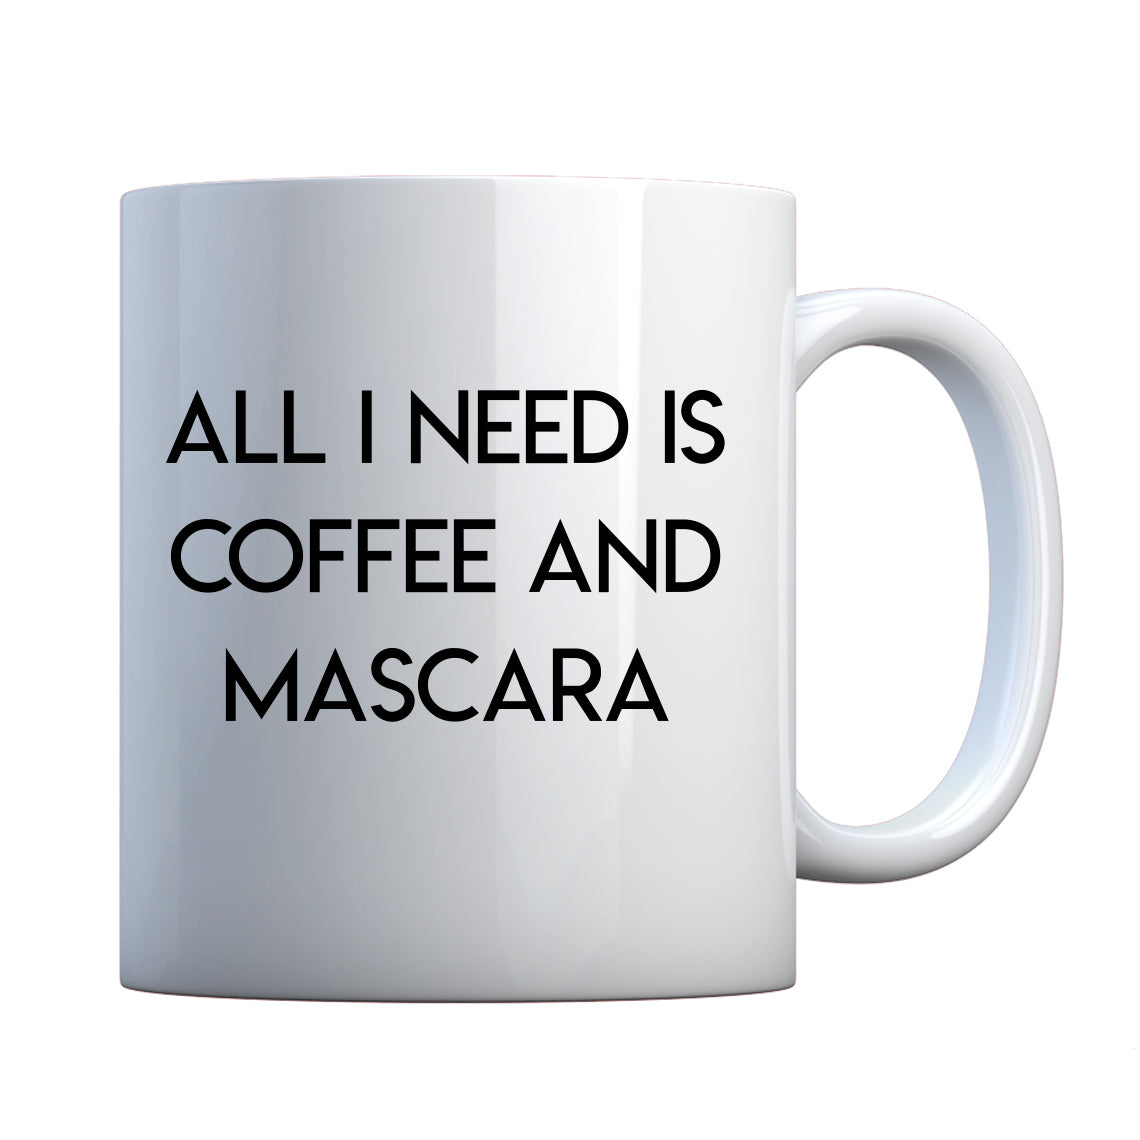 Mug All I need is Coffee and Mascara Ceramic Gift Mug